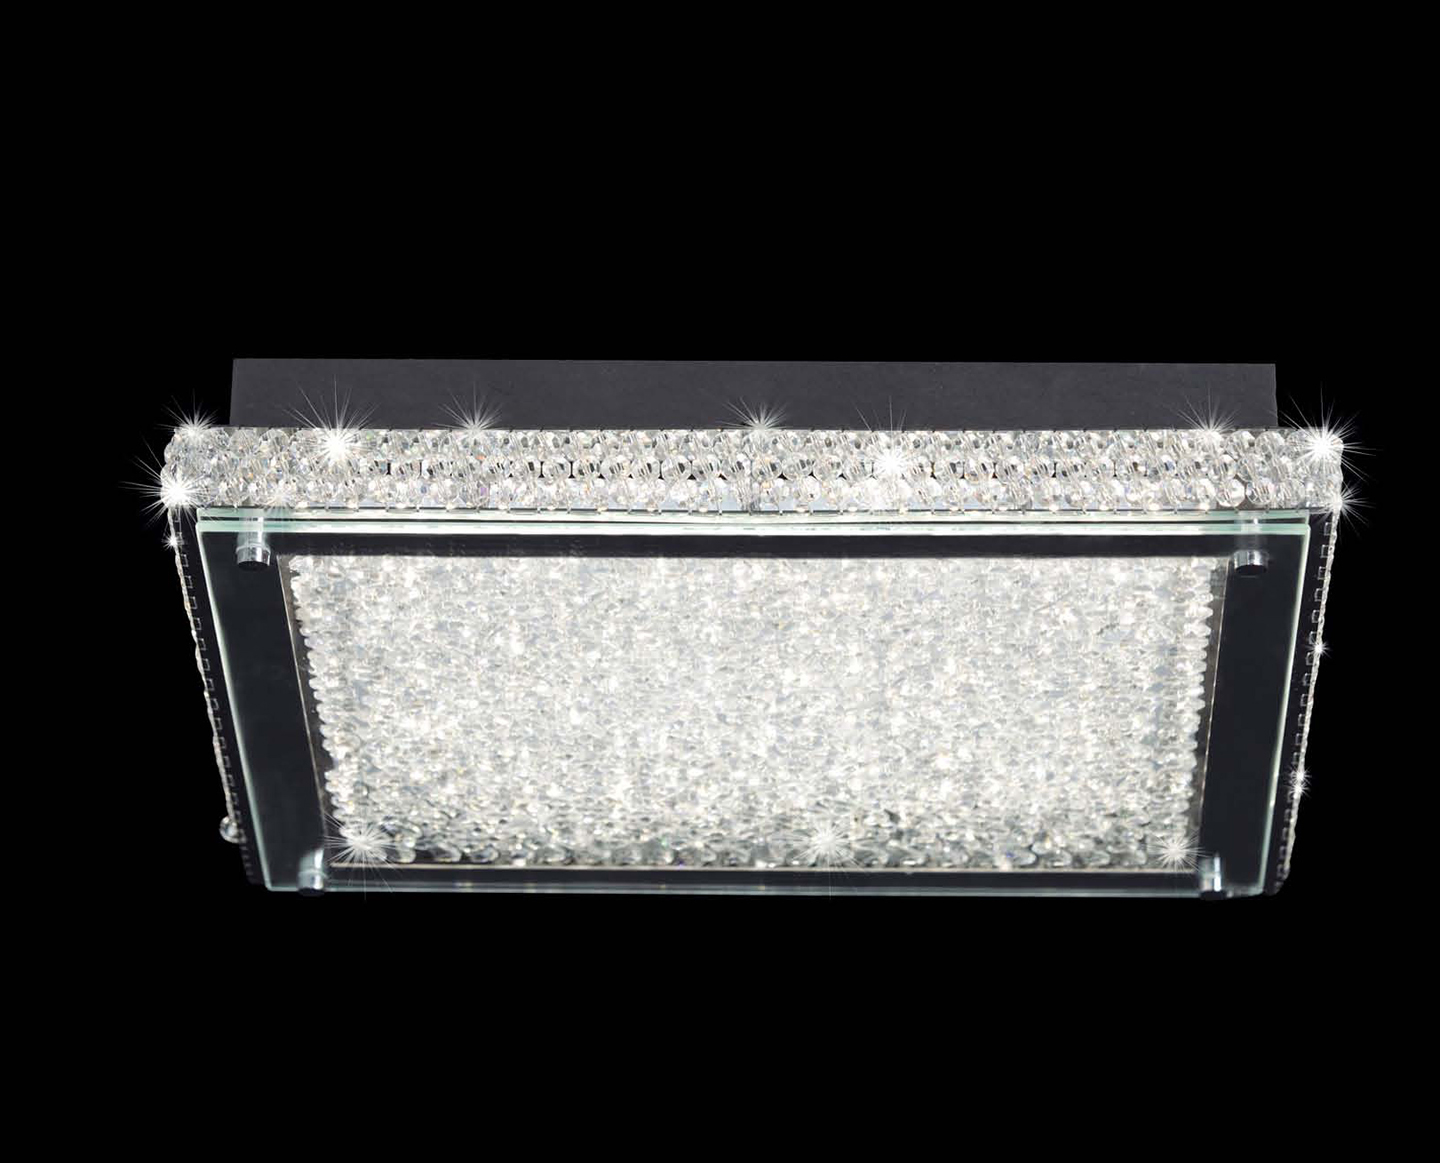 Mantra Verre LED plafonnier Carrée Moyen 40 Cm LED 1x21W Verre/Chrome